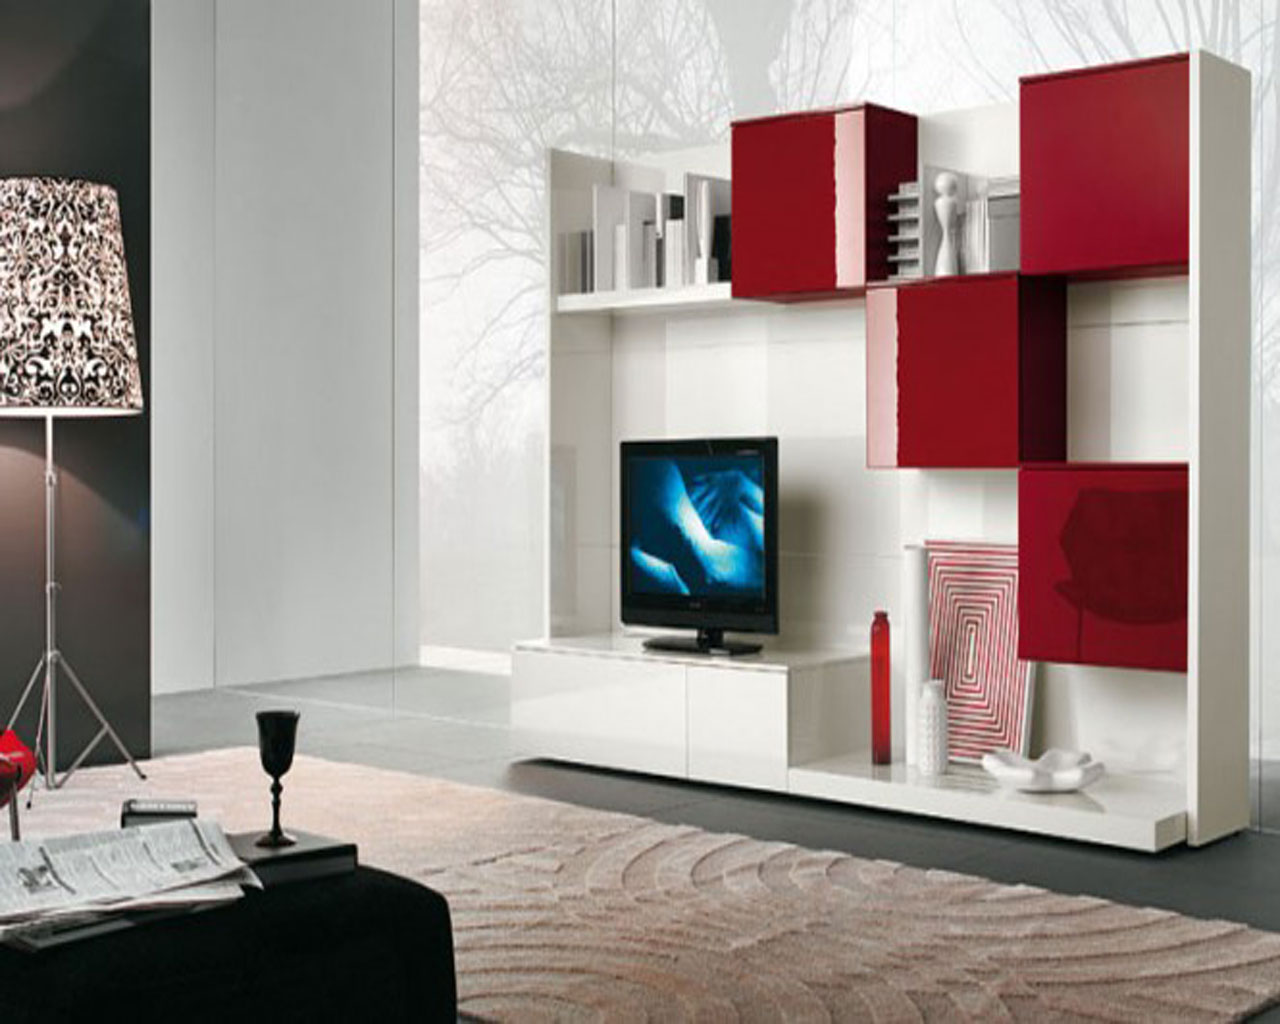 wall unit design and cute red storage ideas also minimalist shelving design for favorite. Black Bedroom Furniture Sets. Home Design Ideas